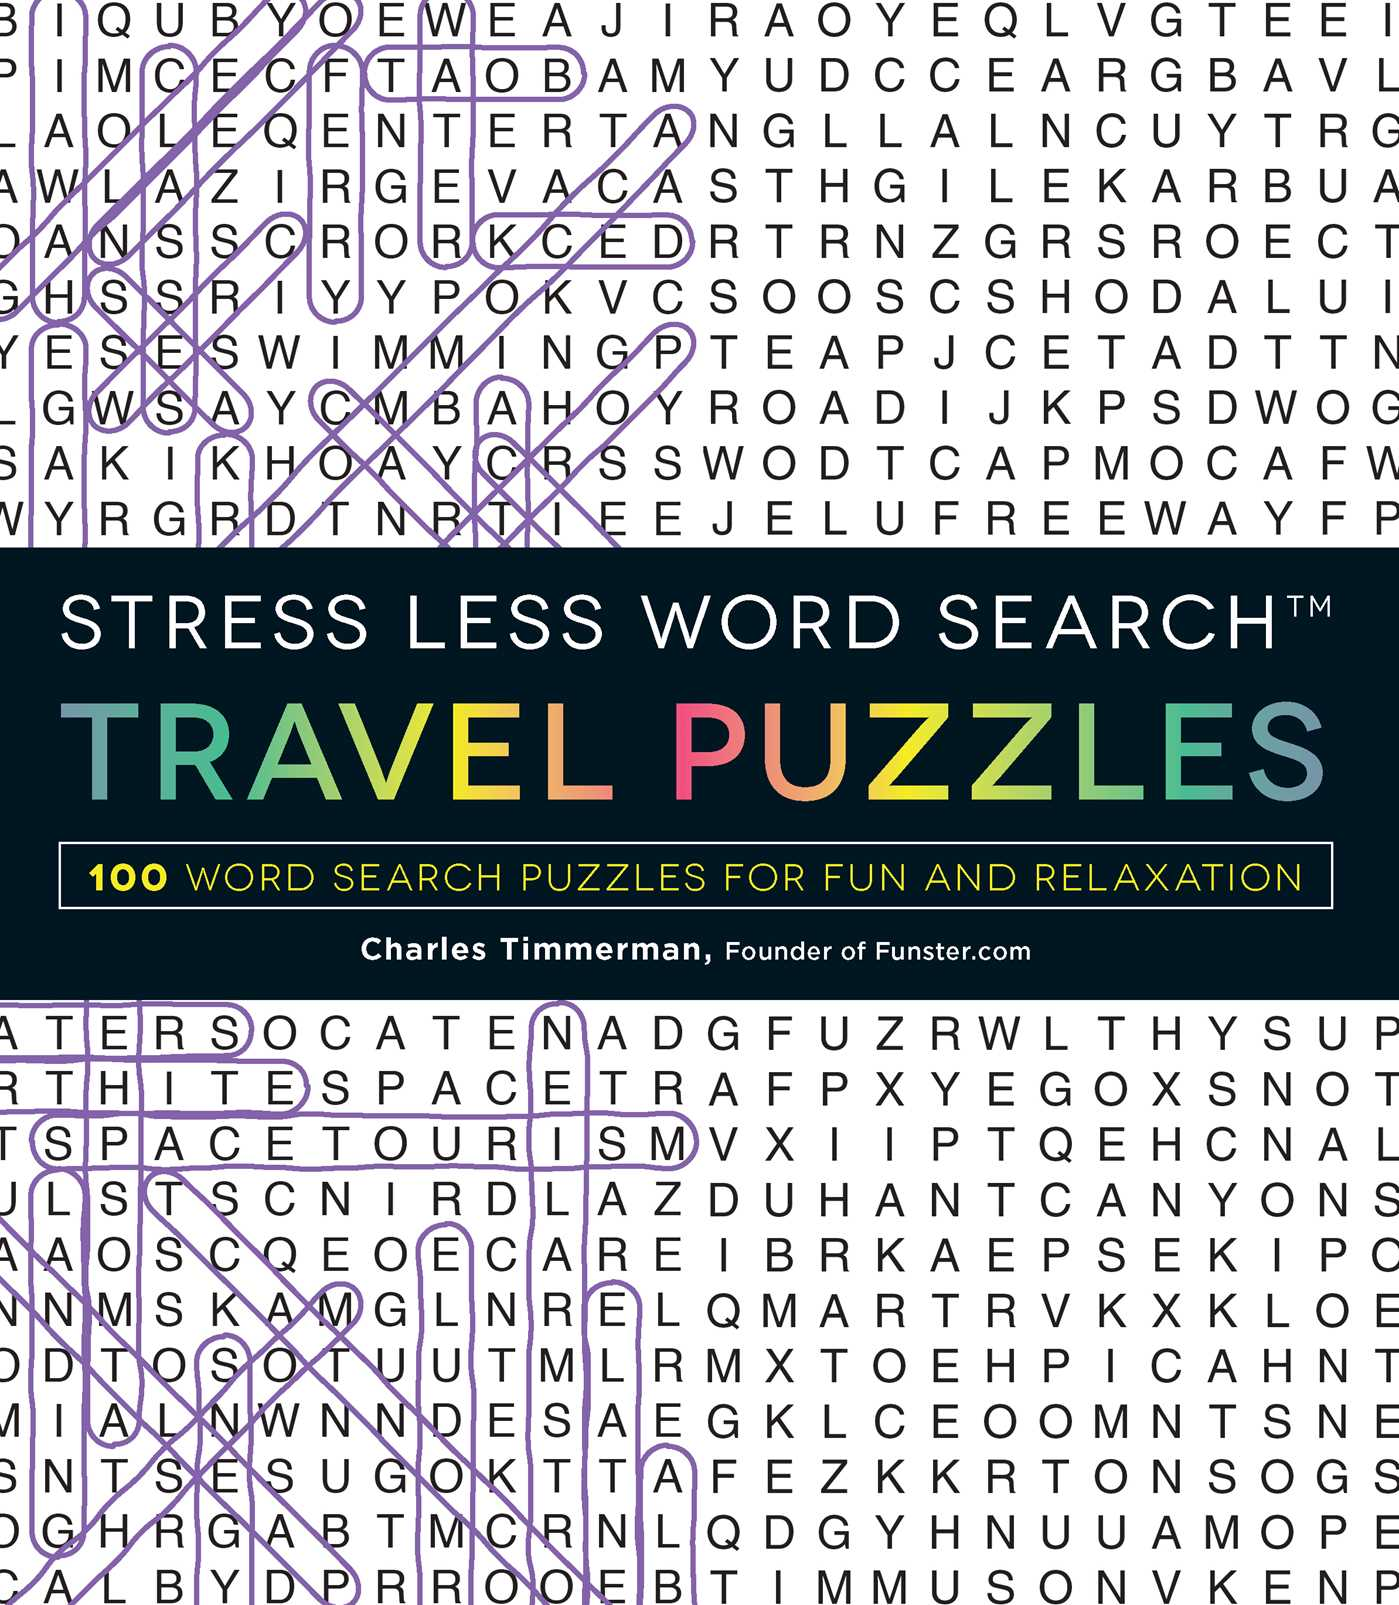 Stress less word search travel puzzles 9781507200681 hr